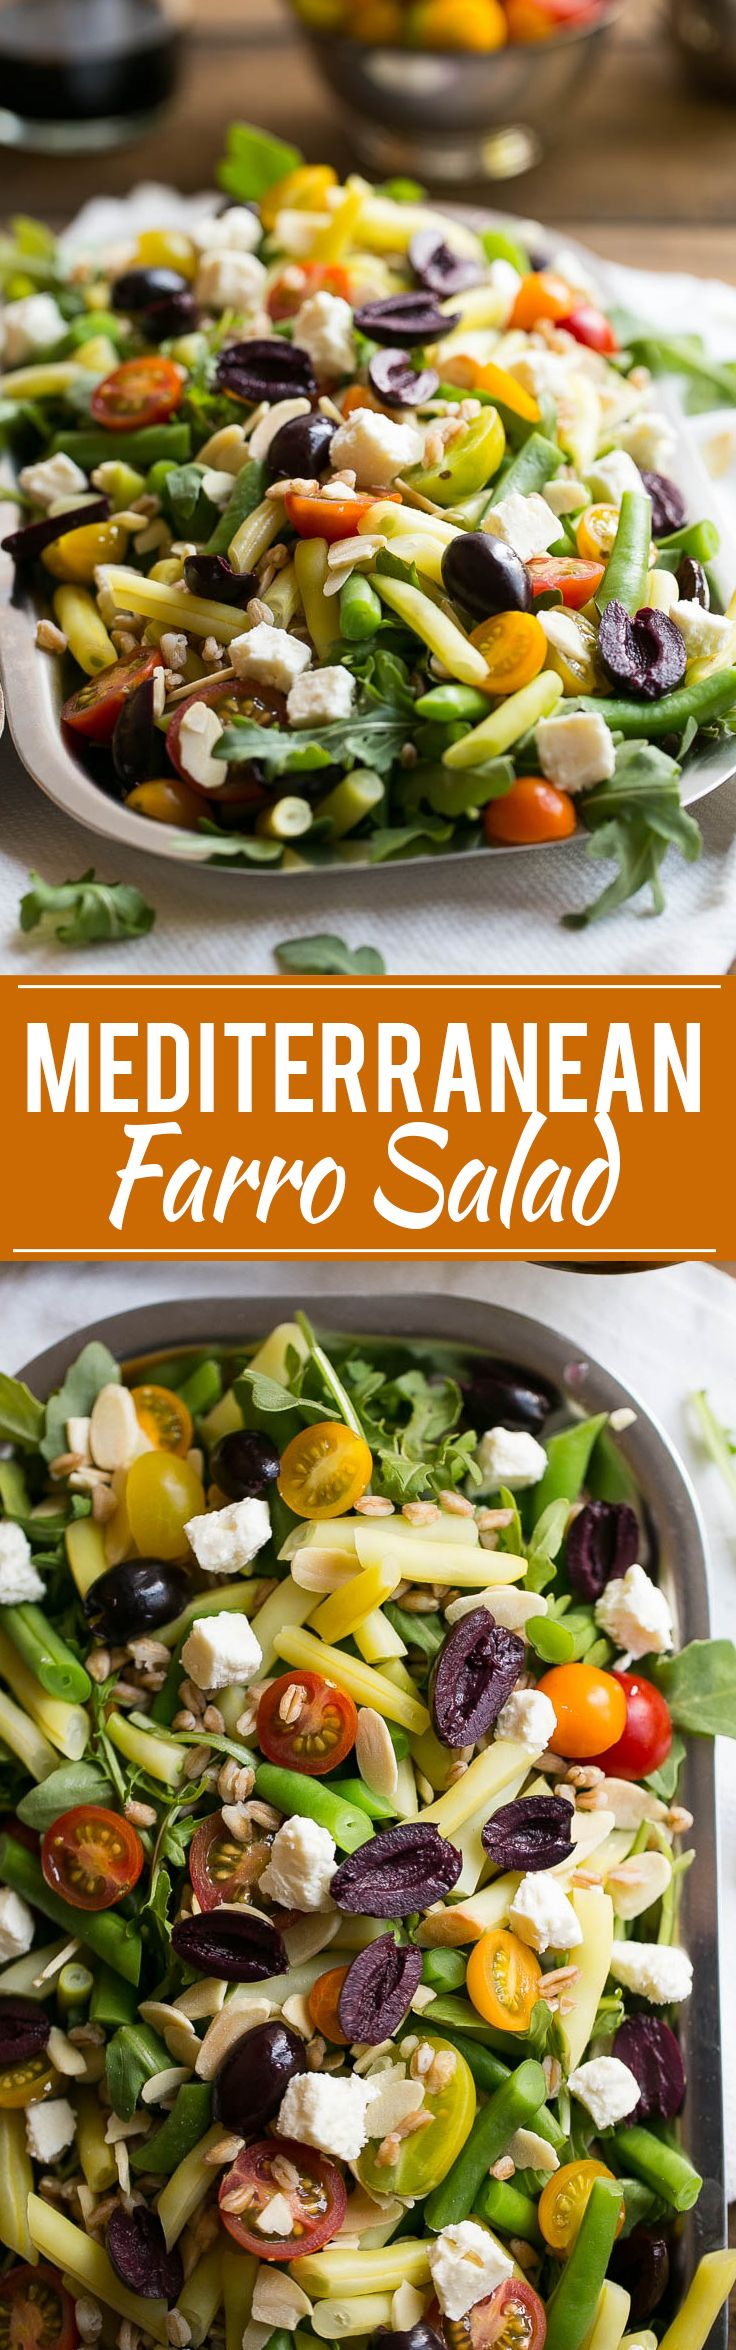 This recipe for mediterranean farro salad is a variety of fresh vegetables, farro grains, feta cheese, olives and almonds, all on a bed of arugula.